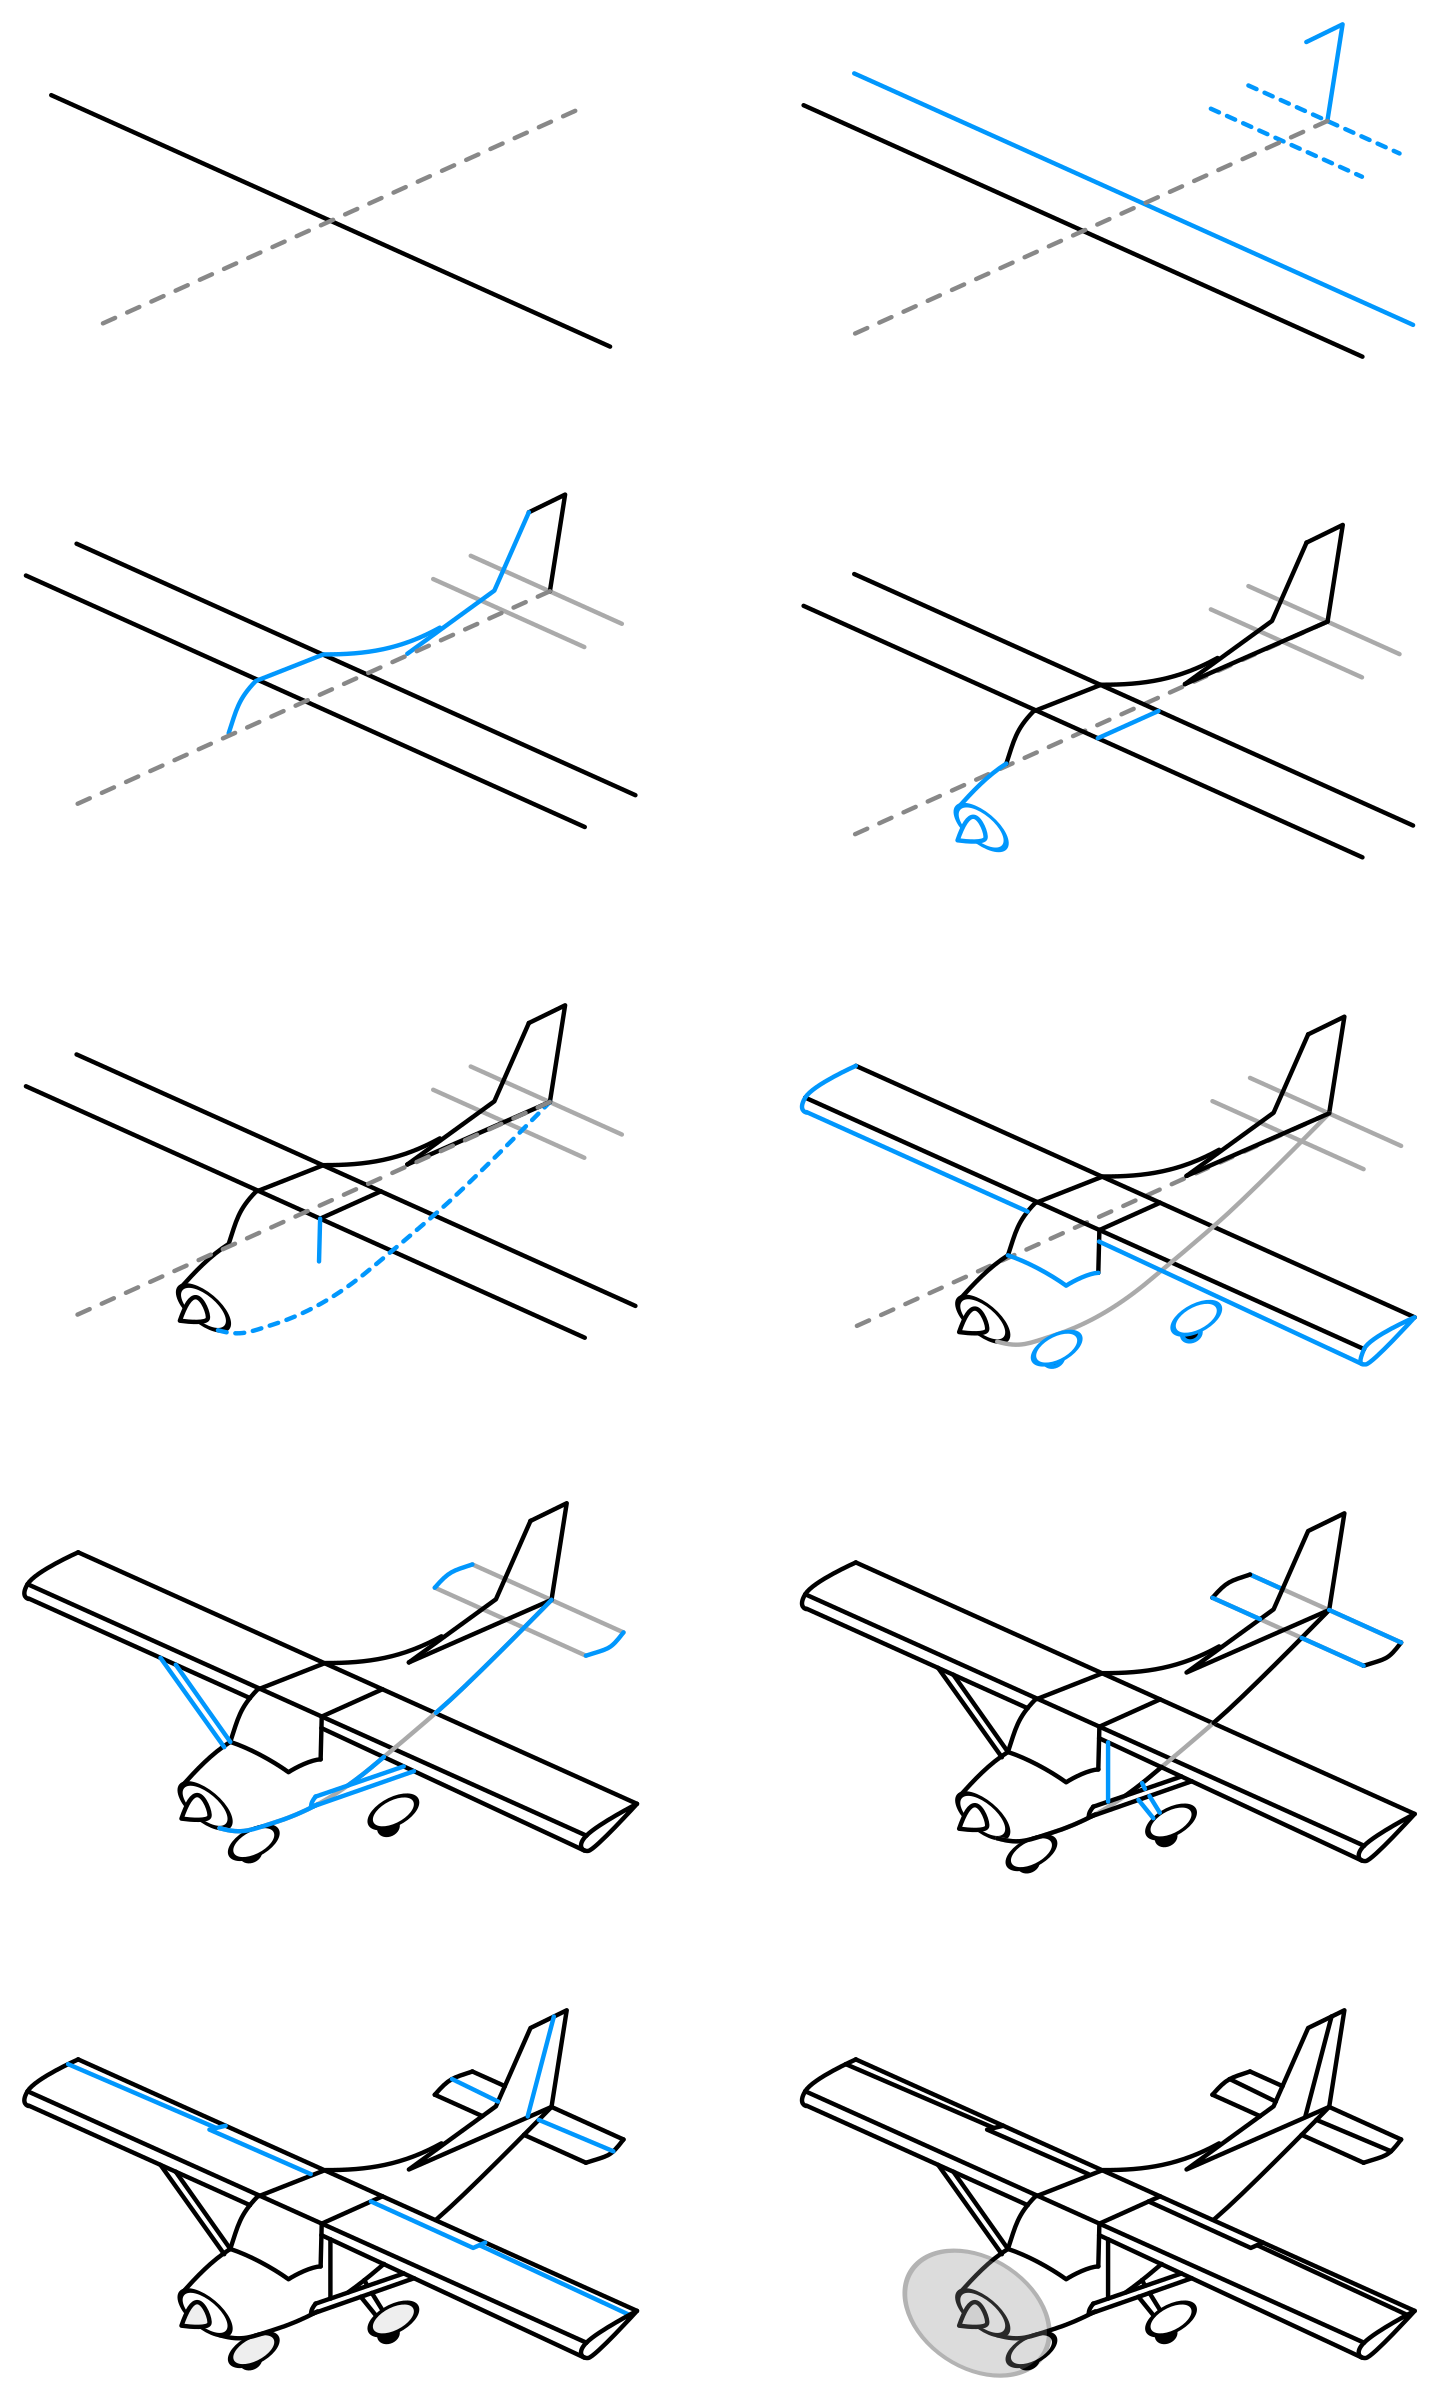 how to draw a airplane step by step fpencil how to draw aeroplane for kids step by step a step airplane draw how step to by